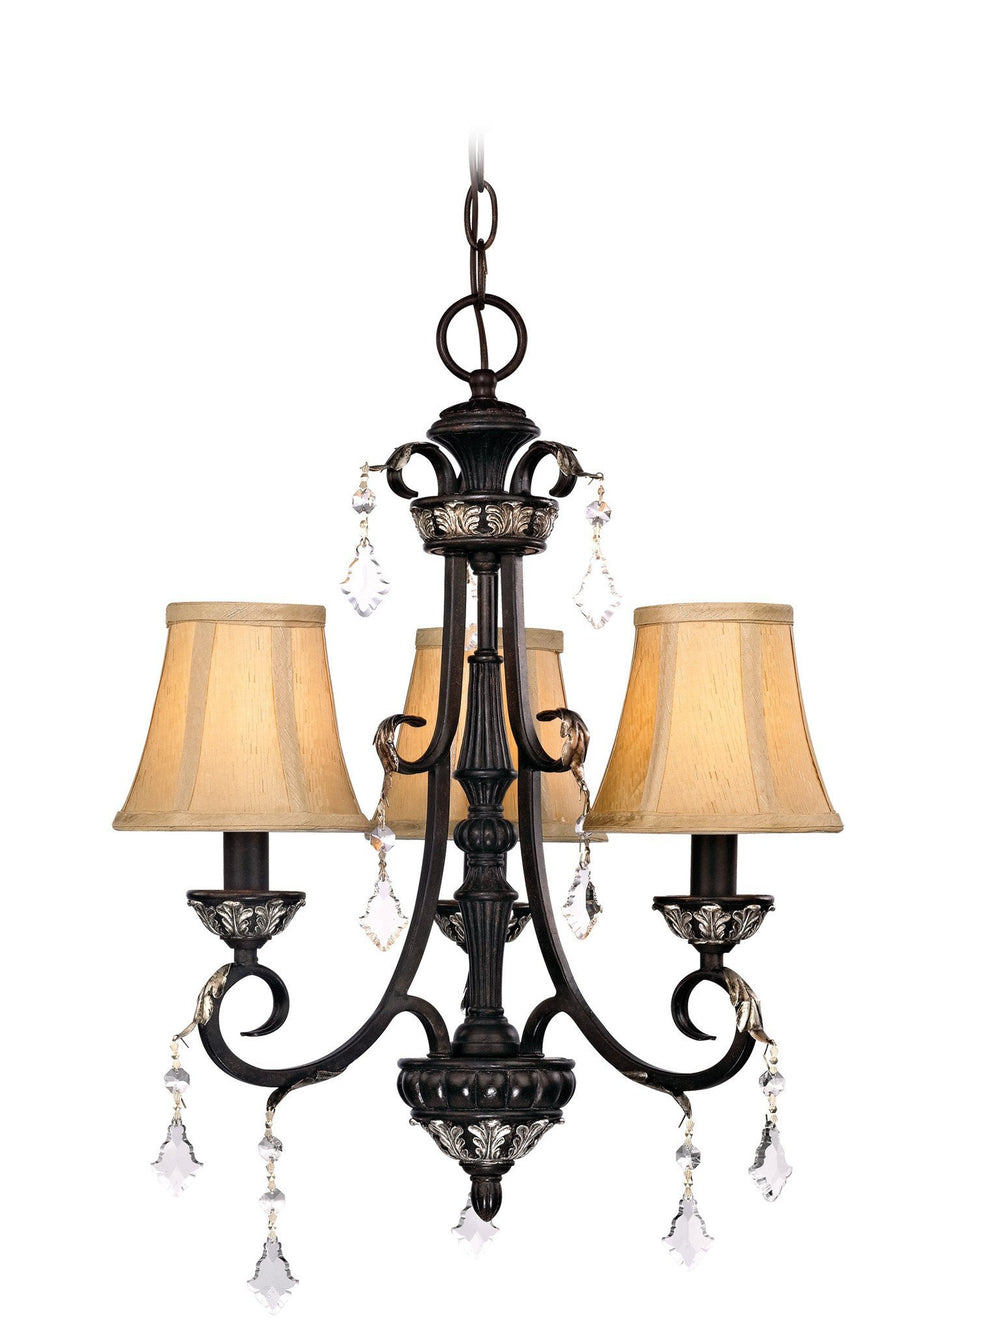 2101-148 Dolan Designs Florence 3 Light Chandelier Phoenix